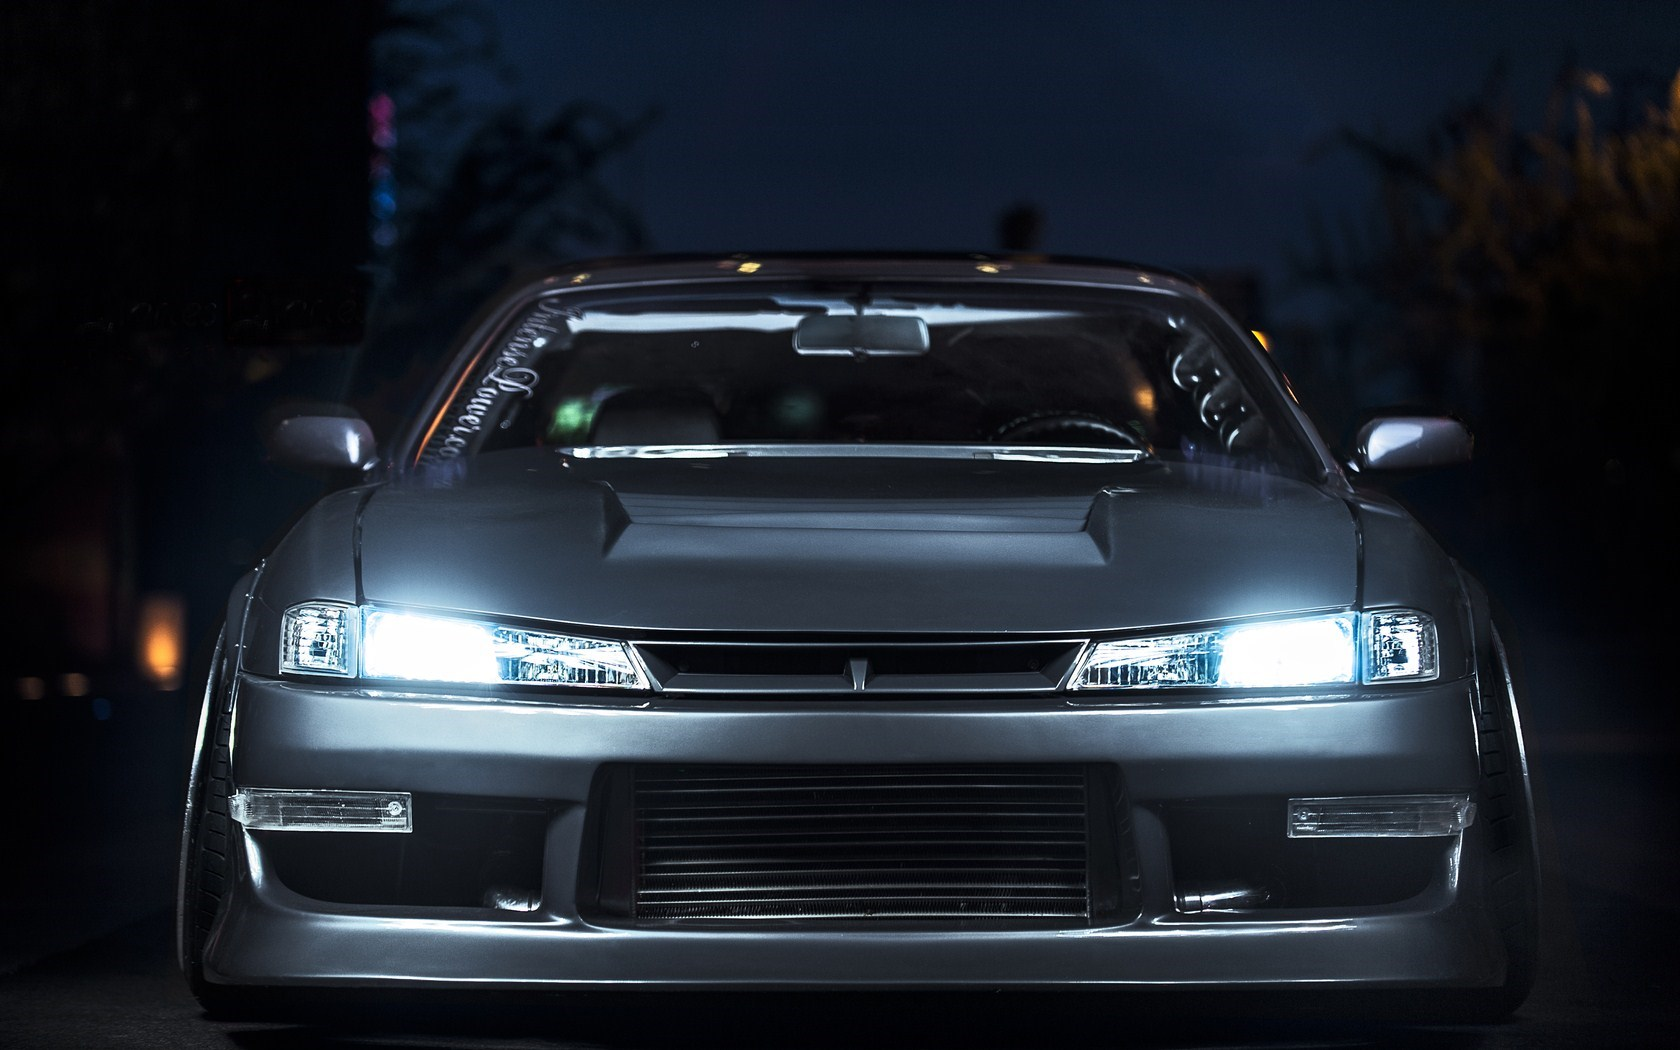 Nissan Silvia S14 Lights Night